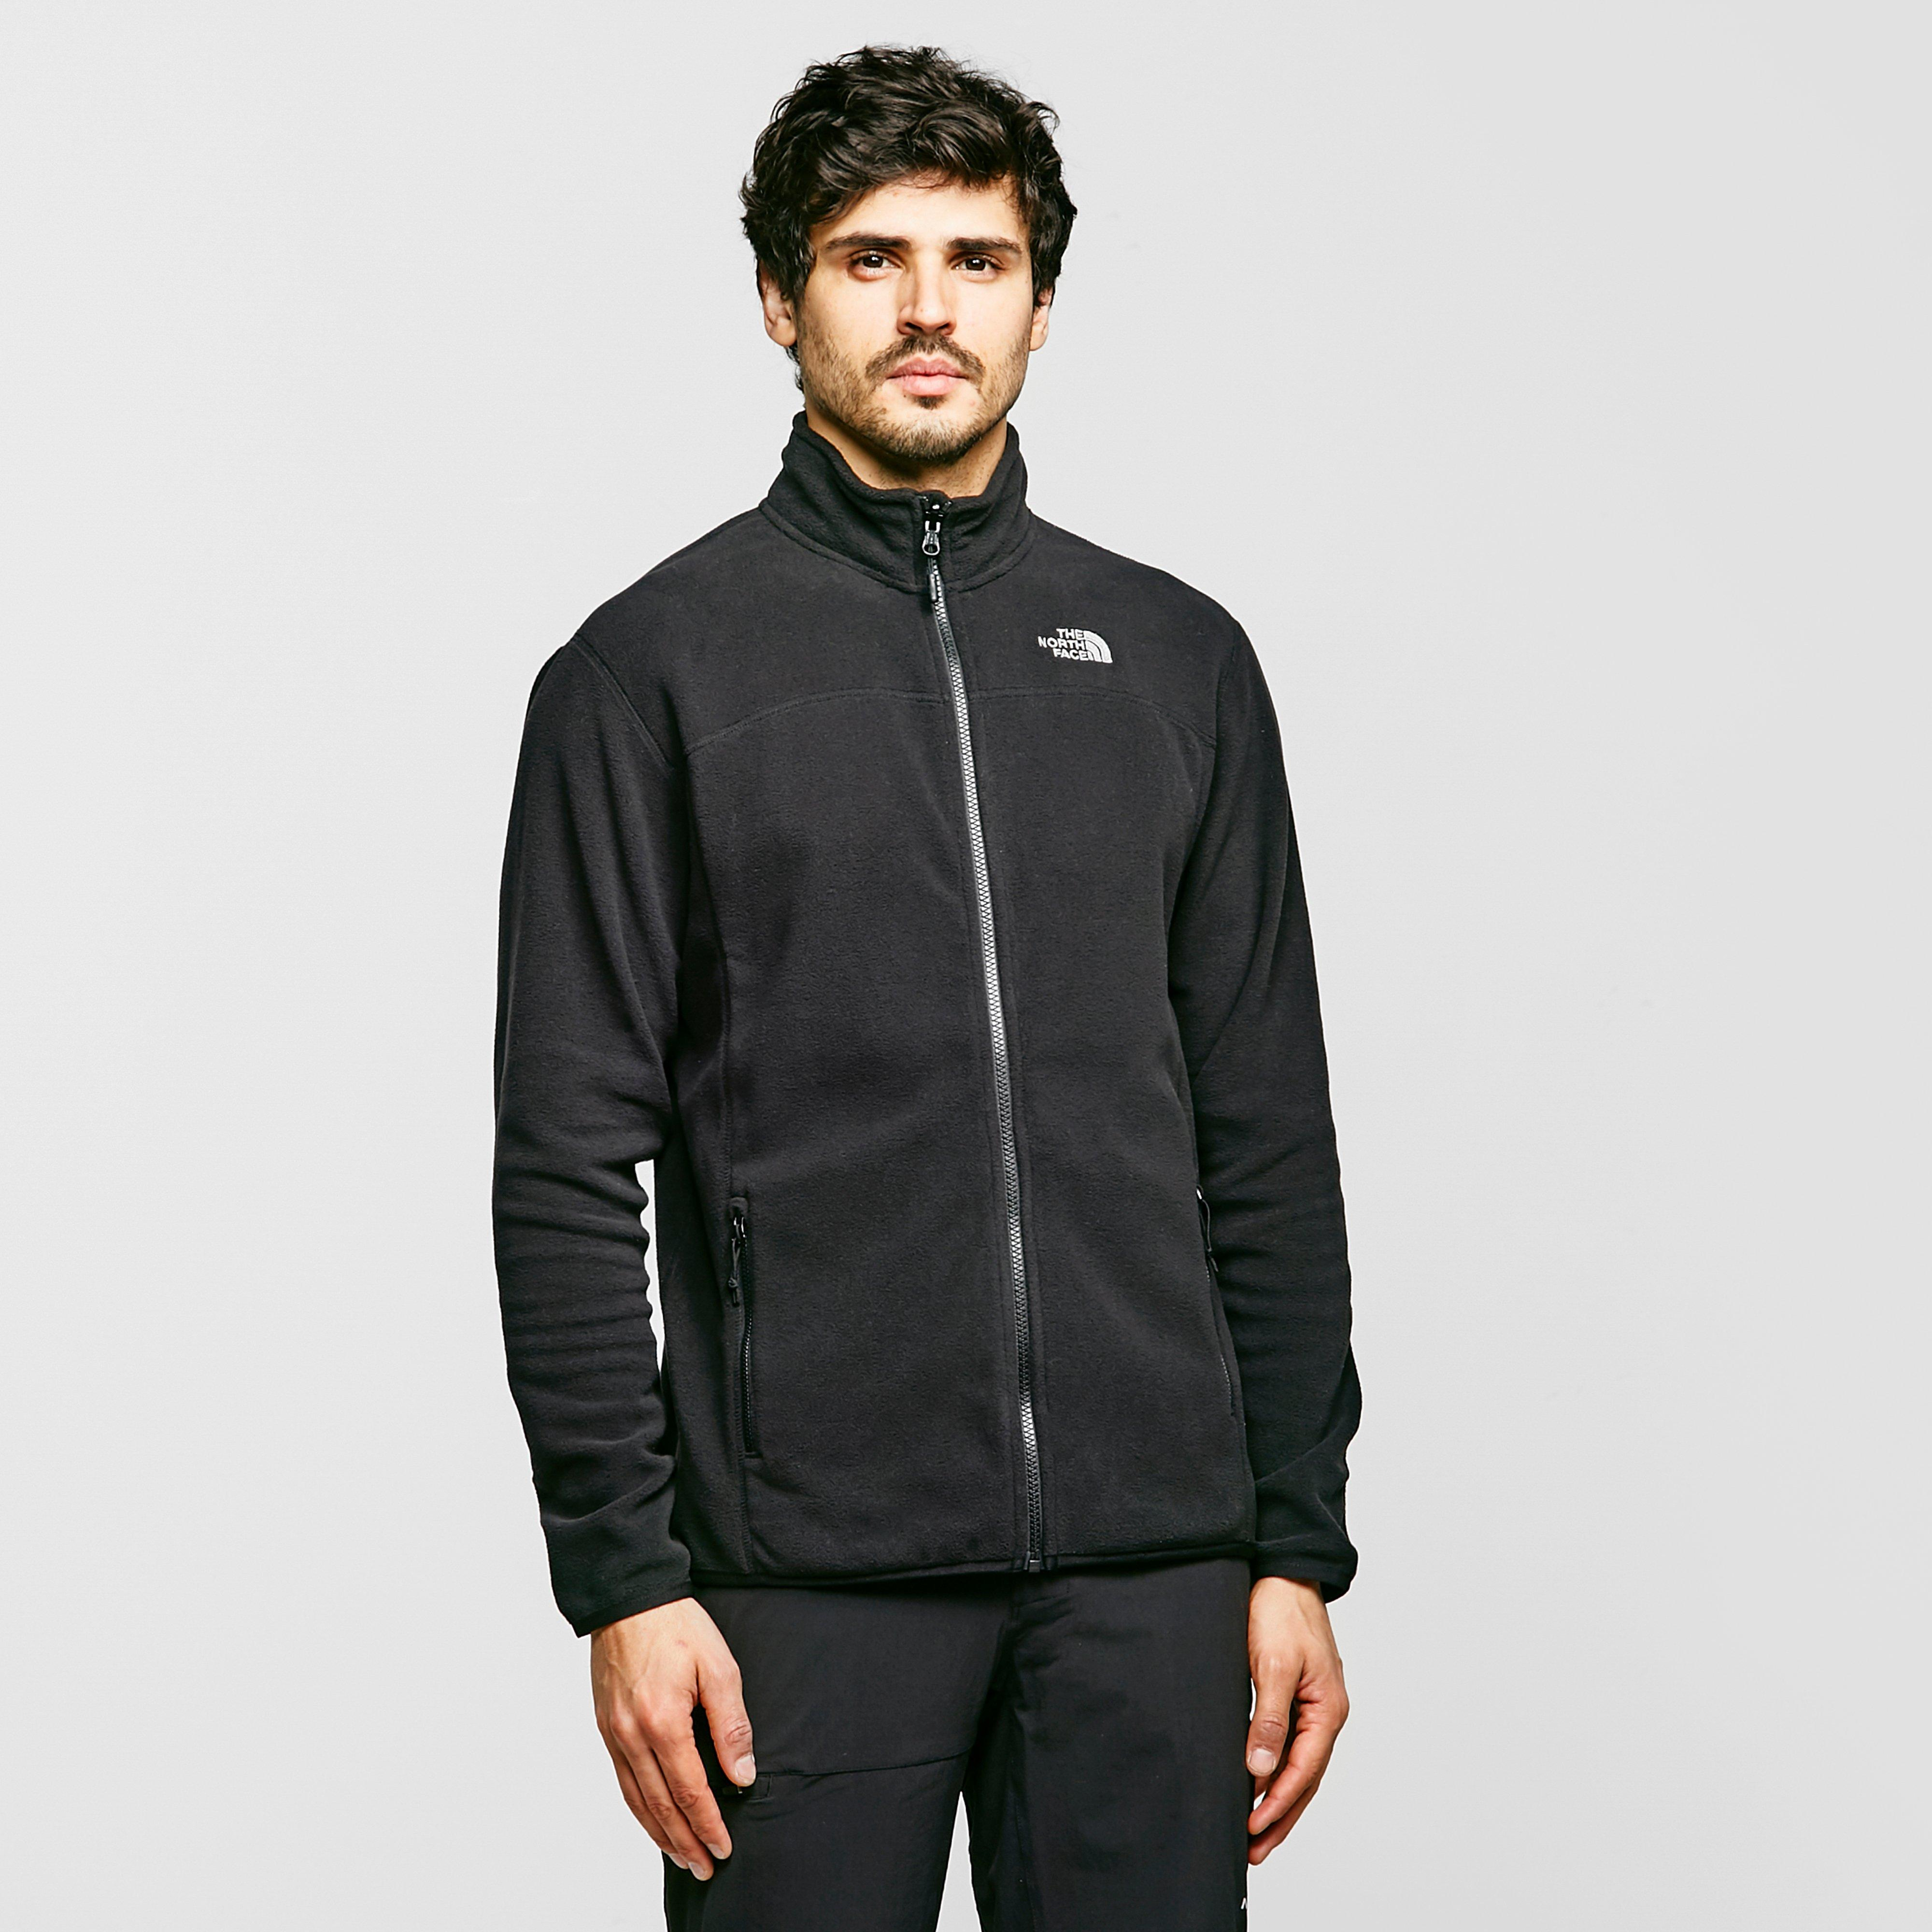 Men's North Face Fleece Jackets & Hoodies | Blacks